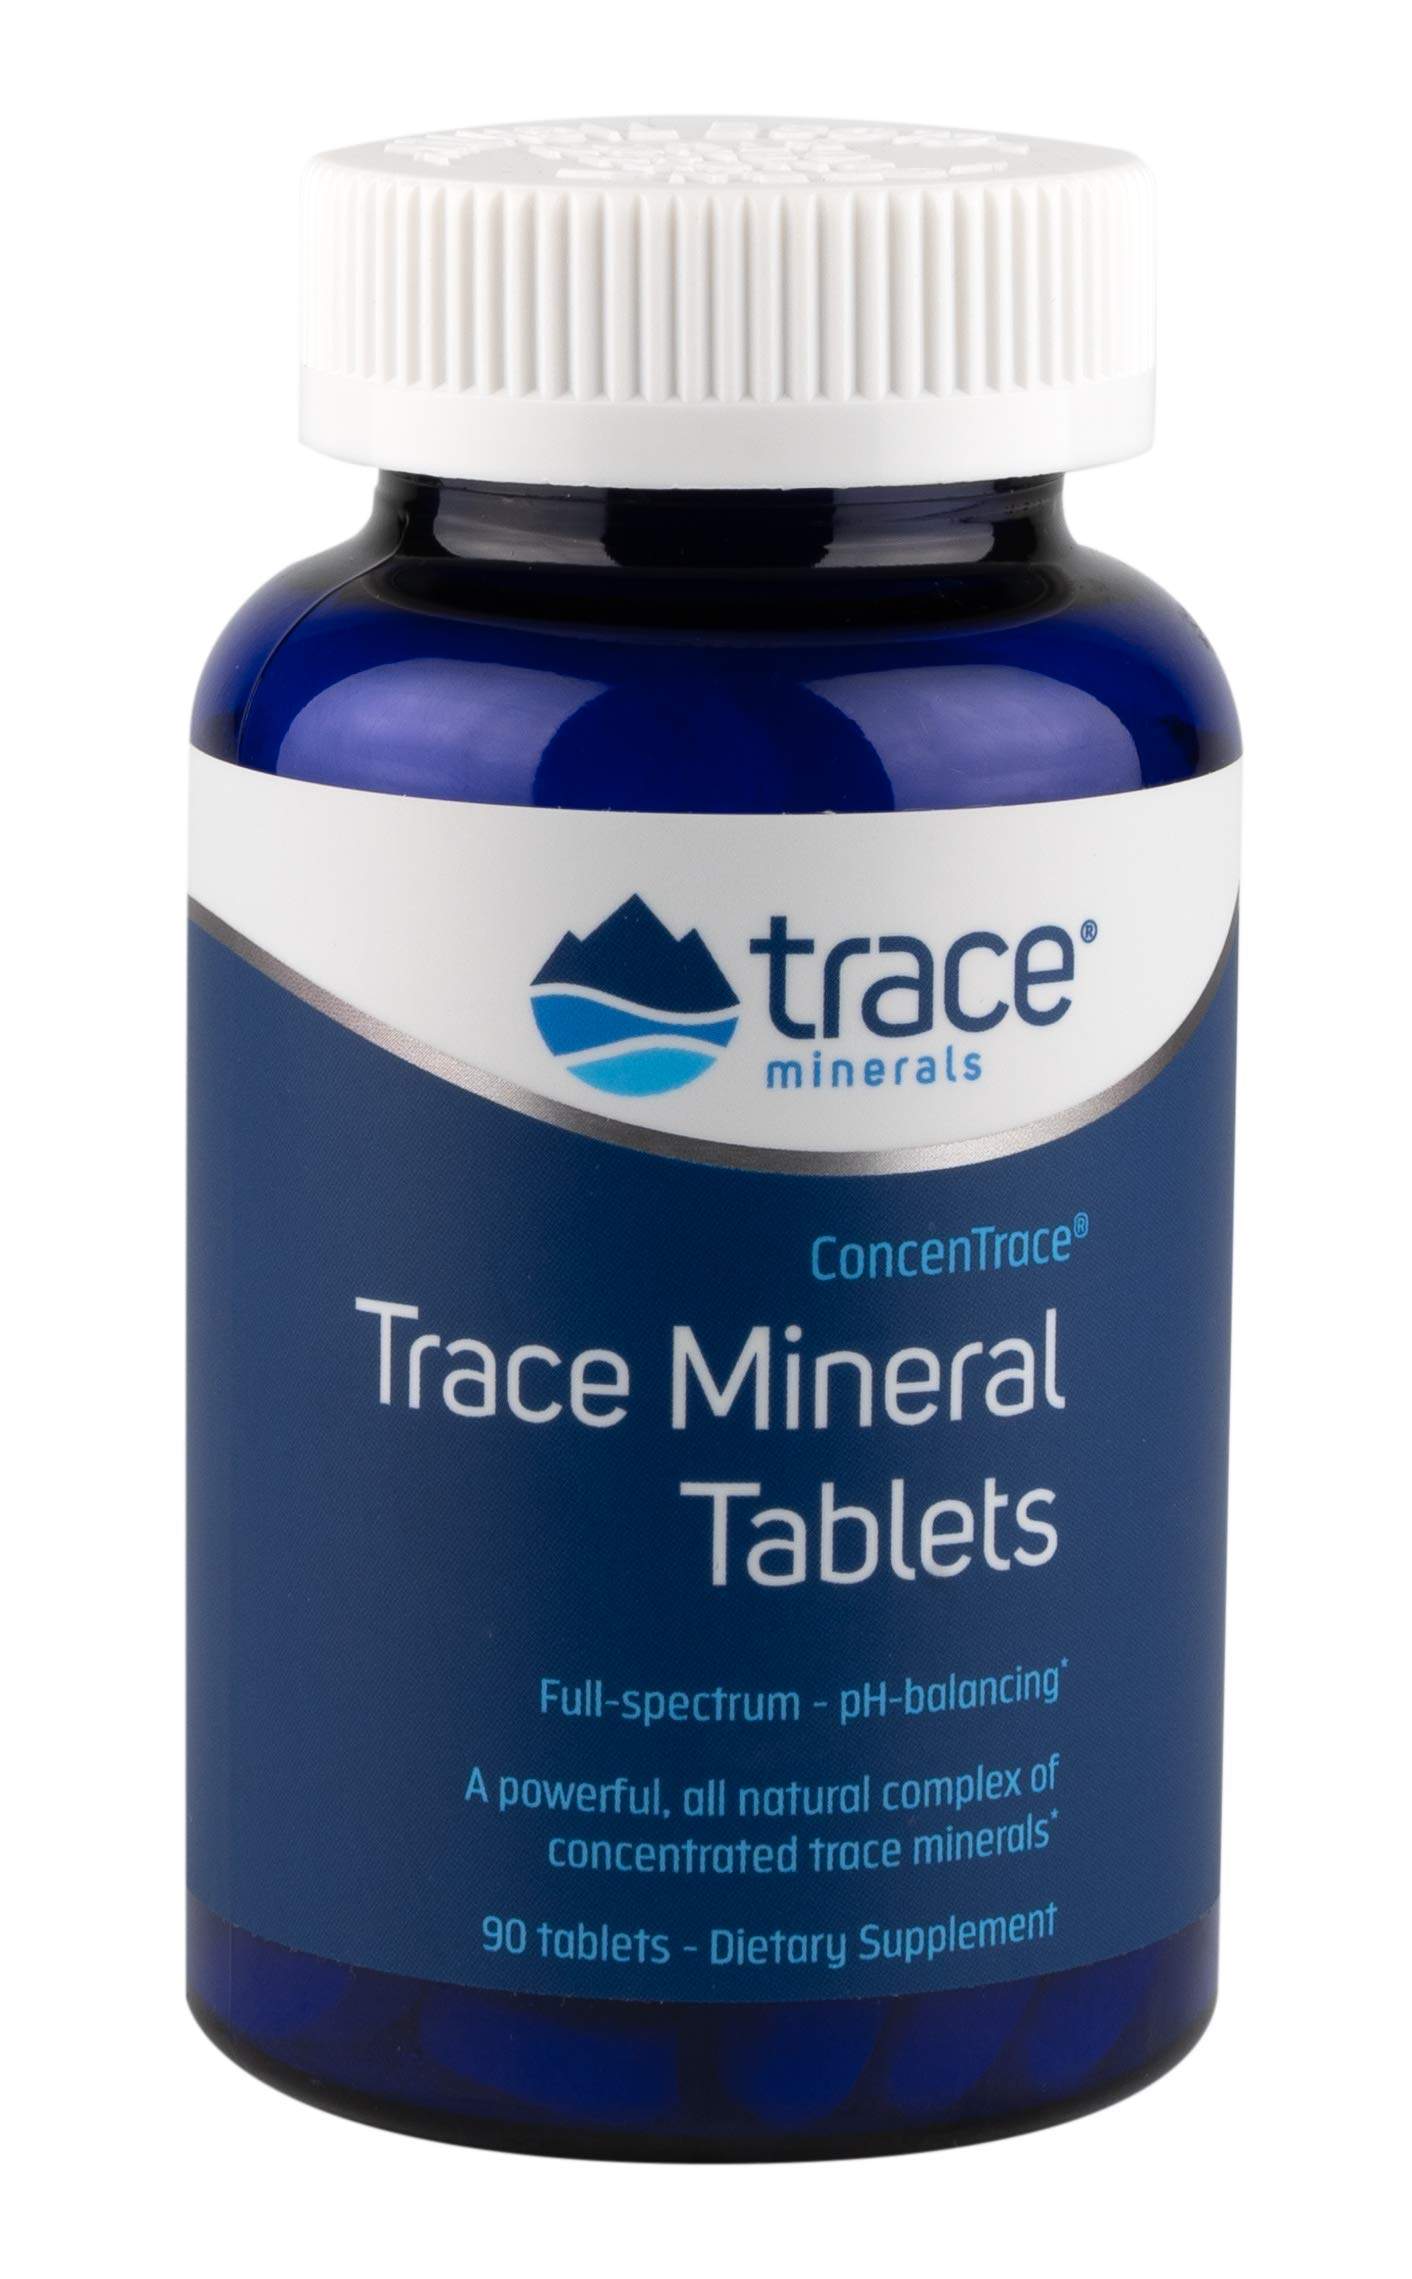 CONCENTRACE Trace Mineral Tablets 90 tab. PH Buffer, Magnesium, Ionic, Vegan, Gluten Free, Hydration, Electrolyte, Magnesium, Men, Women, Non GMO, Dairy Free, Kosher Halal, Made in The USA